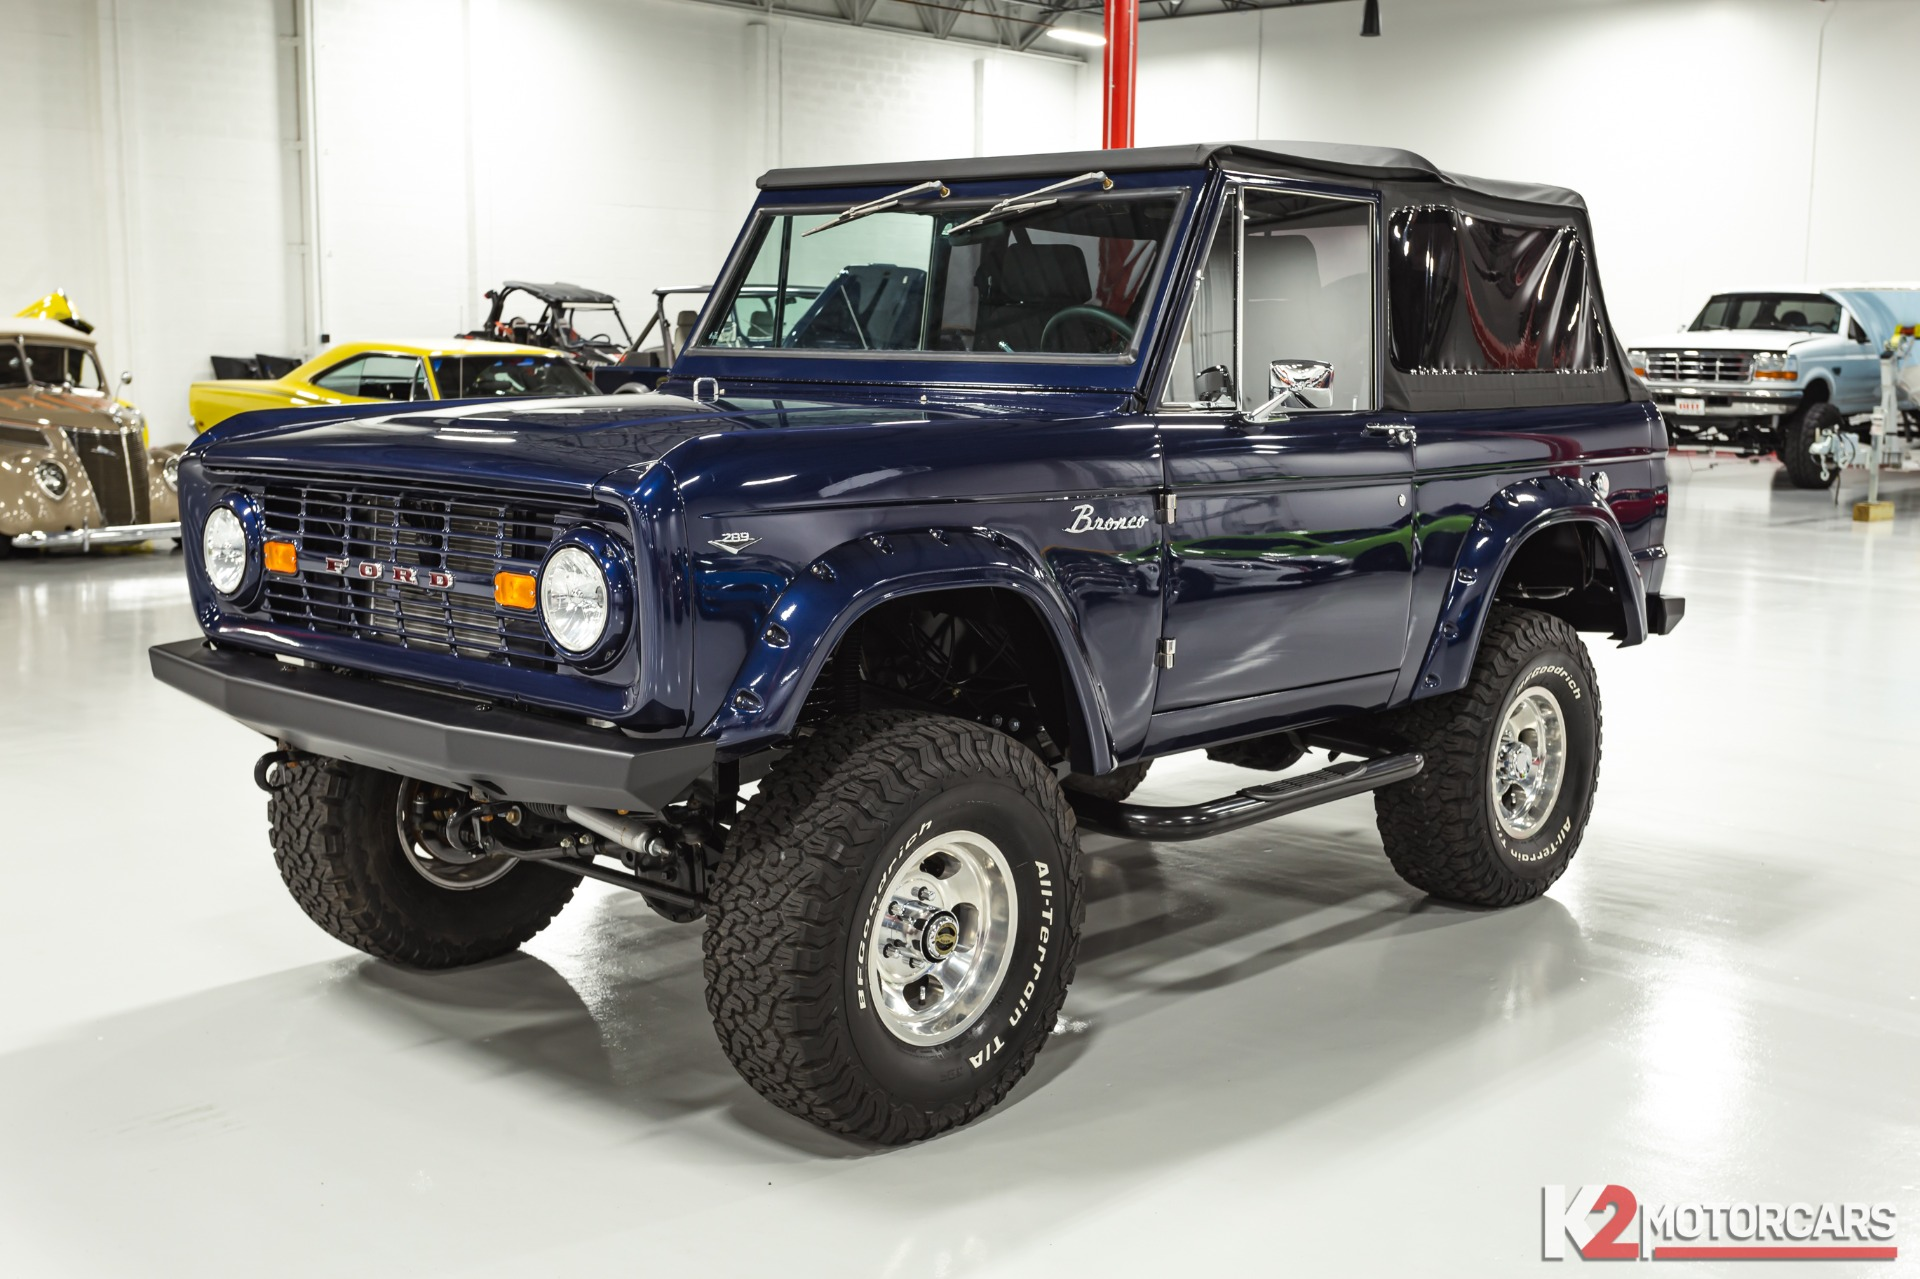 Used 1968 Ford Bronco Modified For Sale 75 000 K2 Motorcars Stock 00035